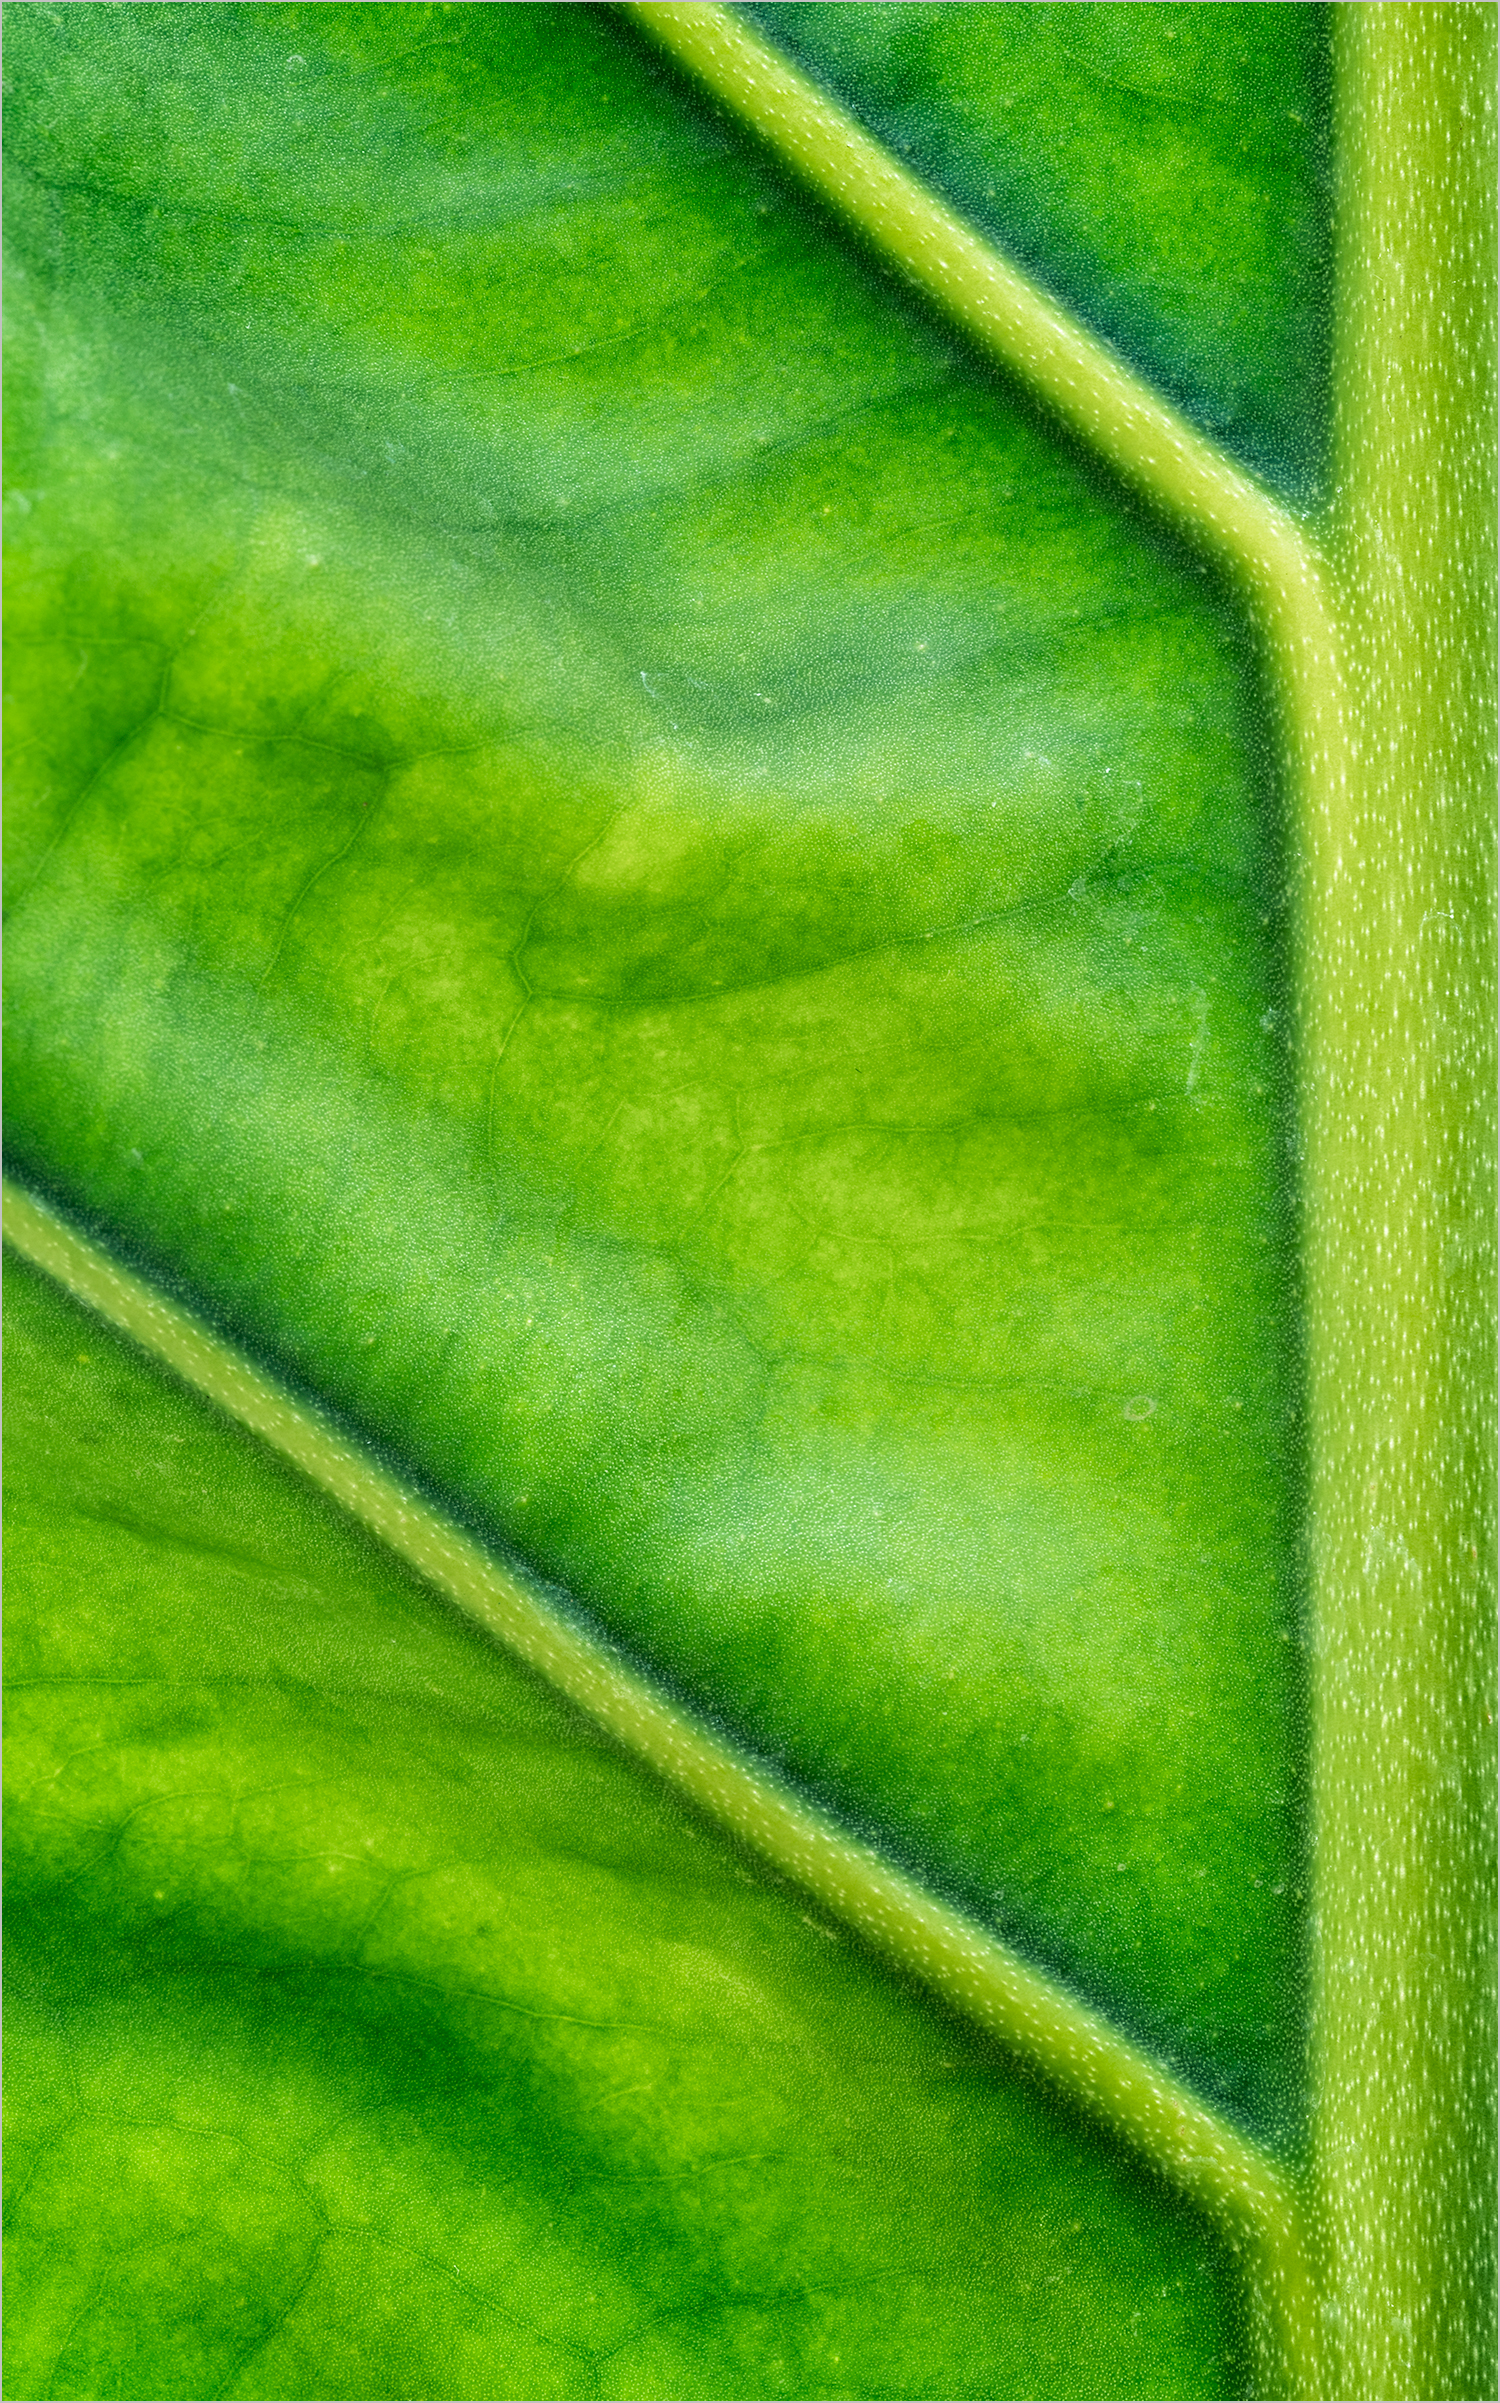 Leaf Macro I © Howard Grill